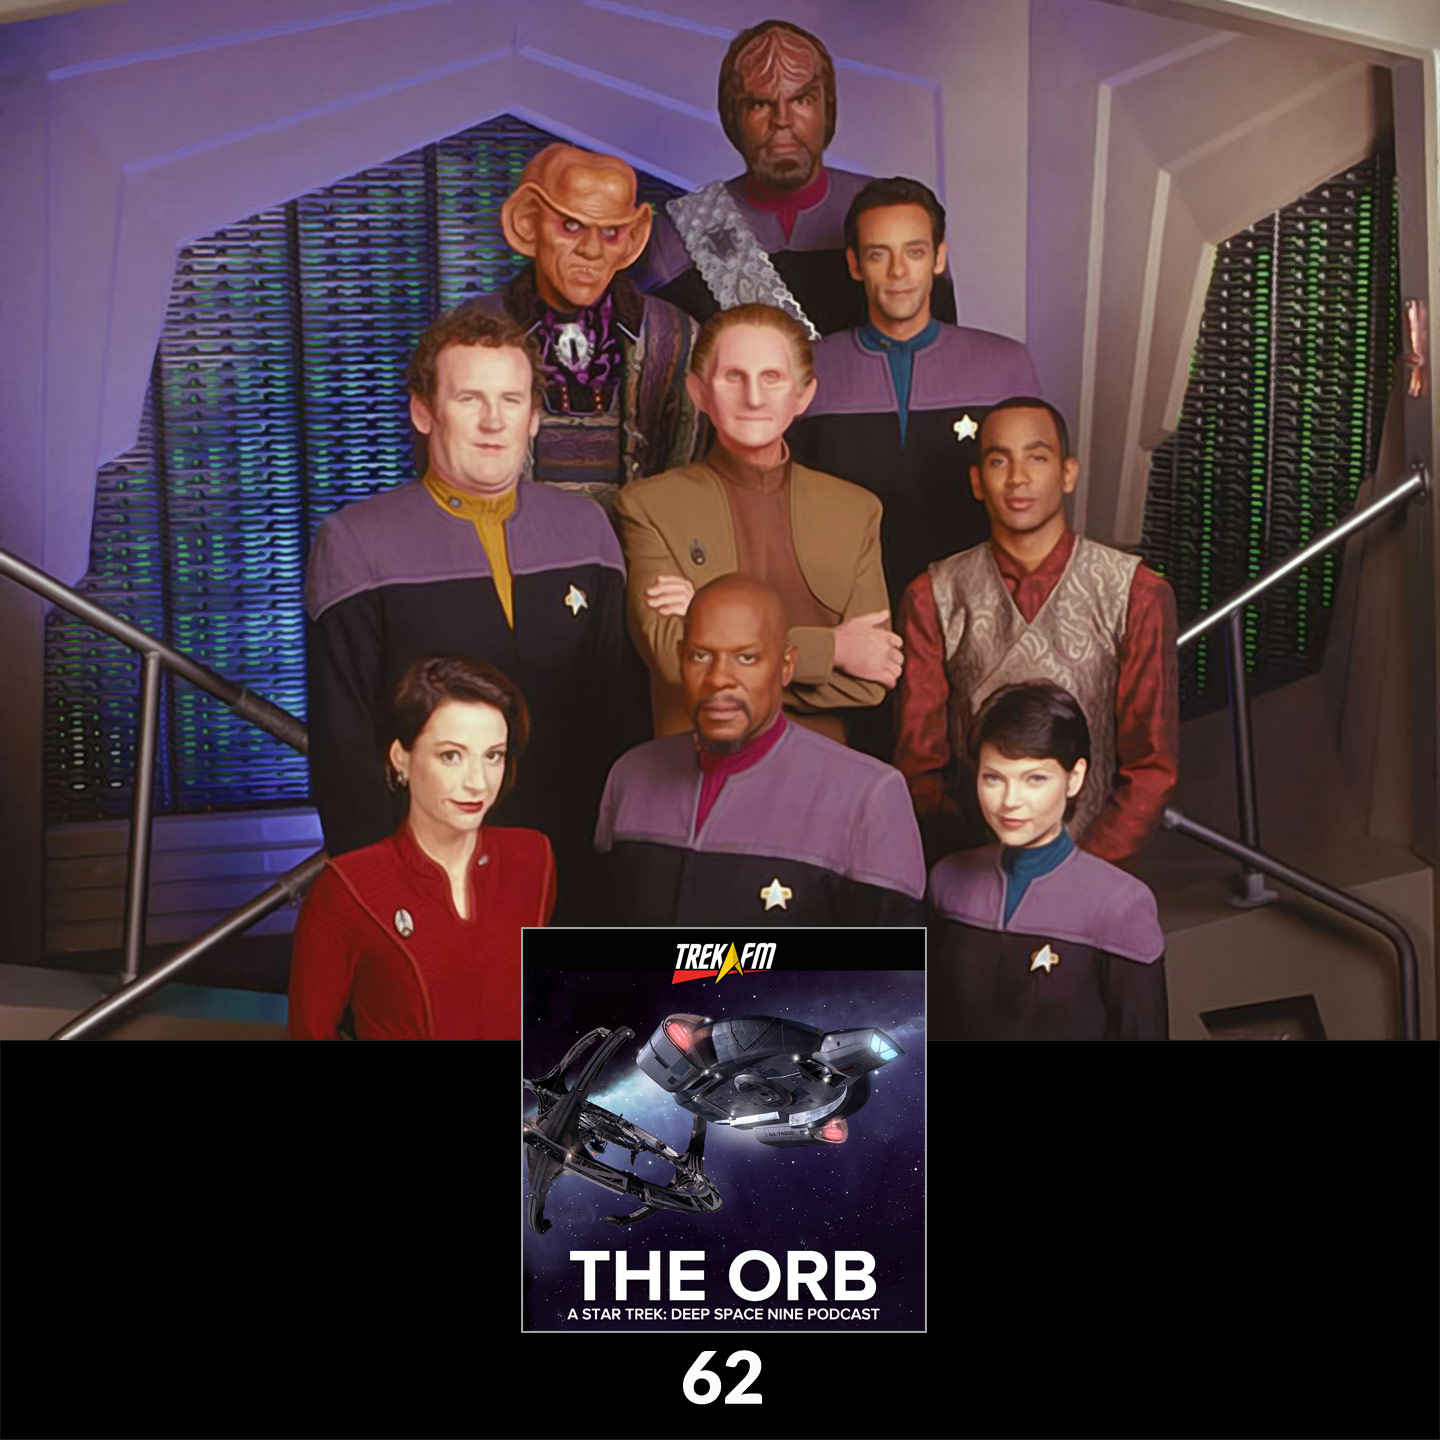 The Orb 62: Action Barbie